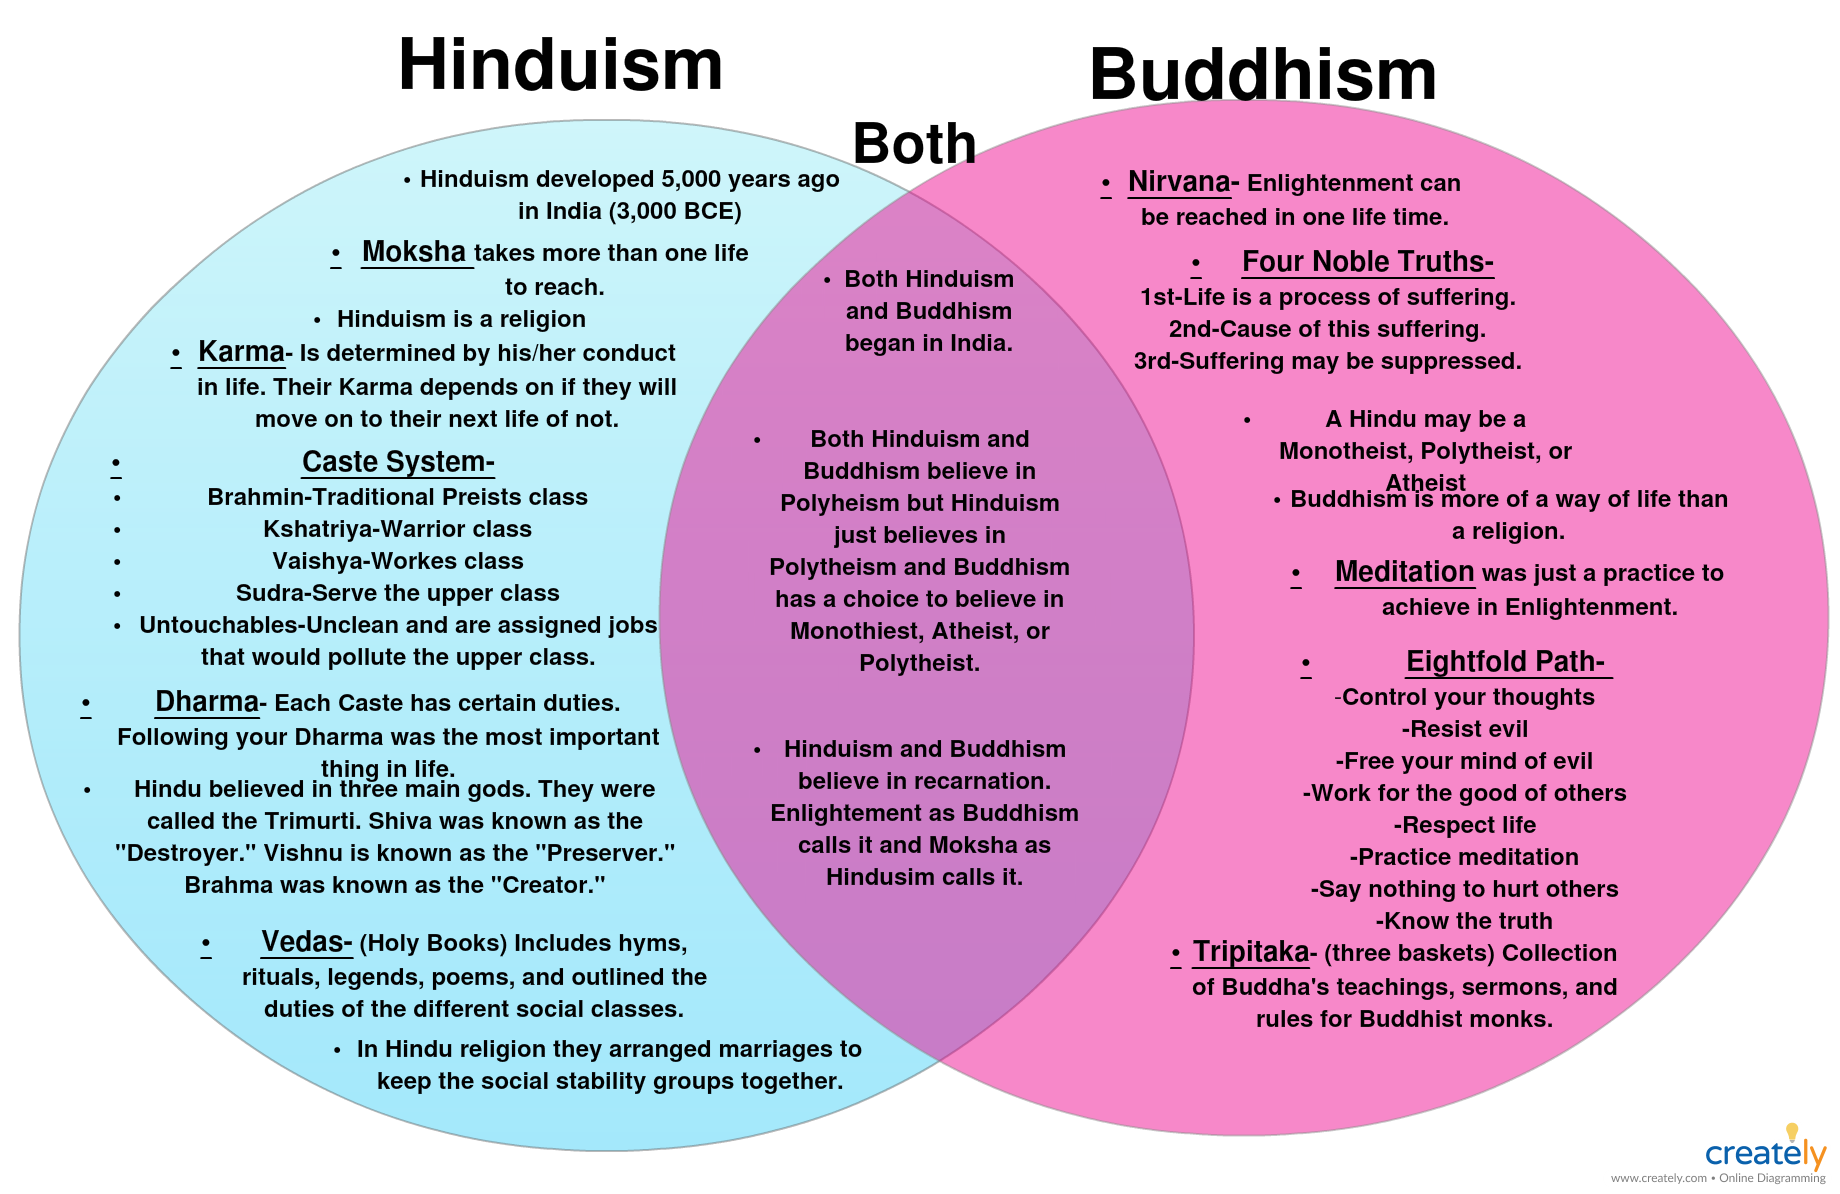 a comparison of the beliefs of the mahariva and the buddha Buddhism and hinduism have a common past, and while there are many similar beliefs between the two religions, there are just as many differences between the buddhist and hindu religions  the buddha did not deny the existence of a supreme god: he just said that we are responsible for our on enlightenment, and not to believe that a supreme.